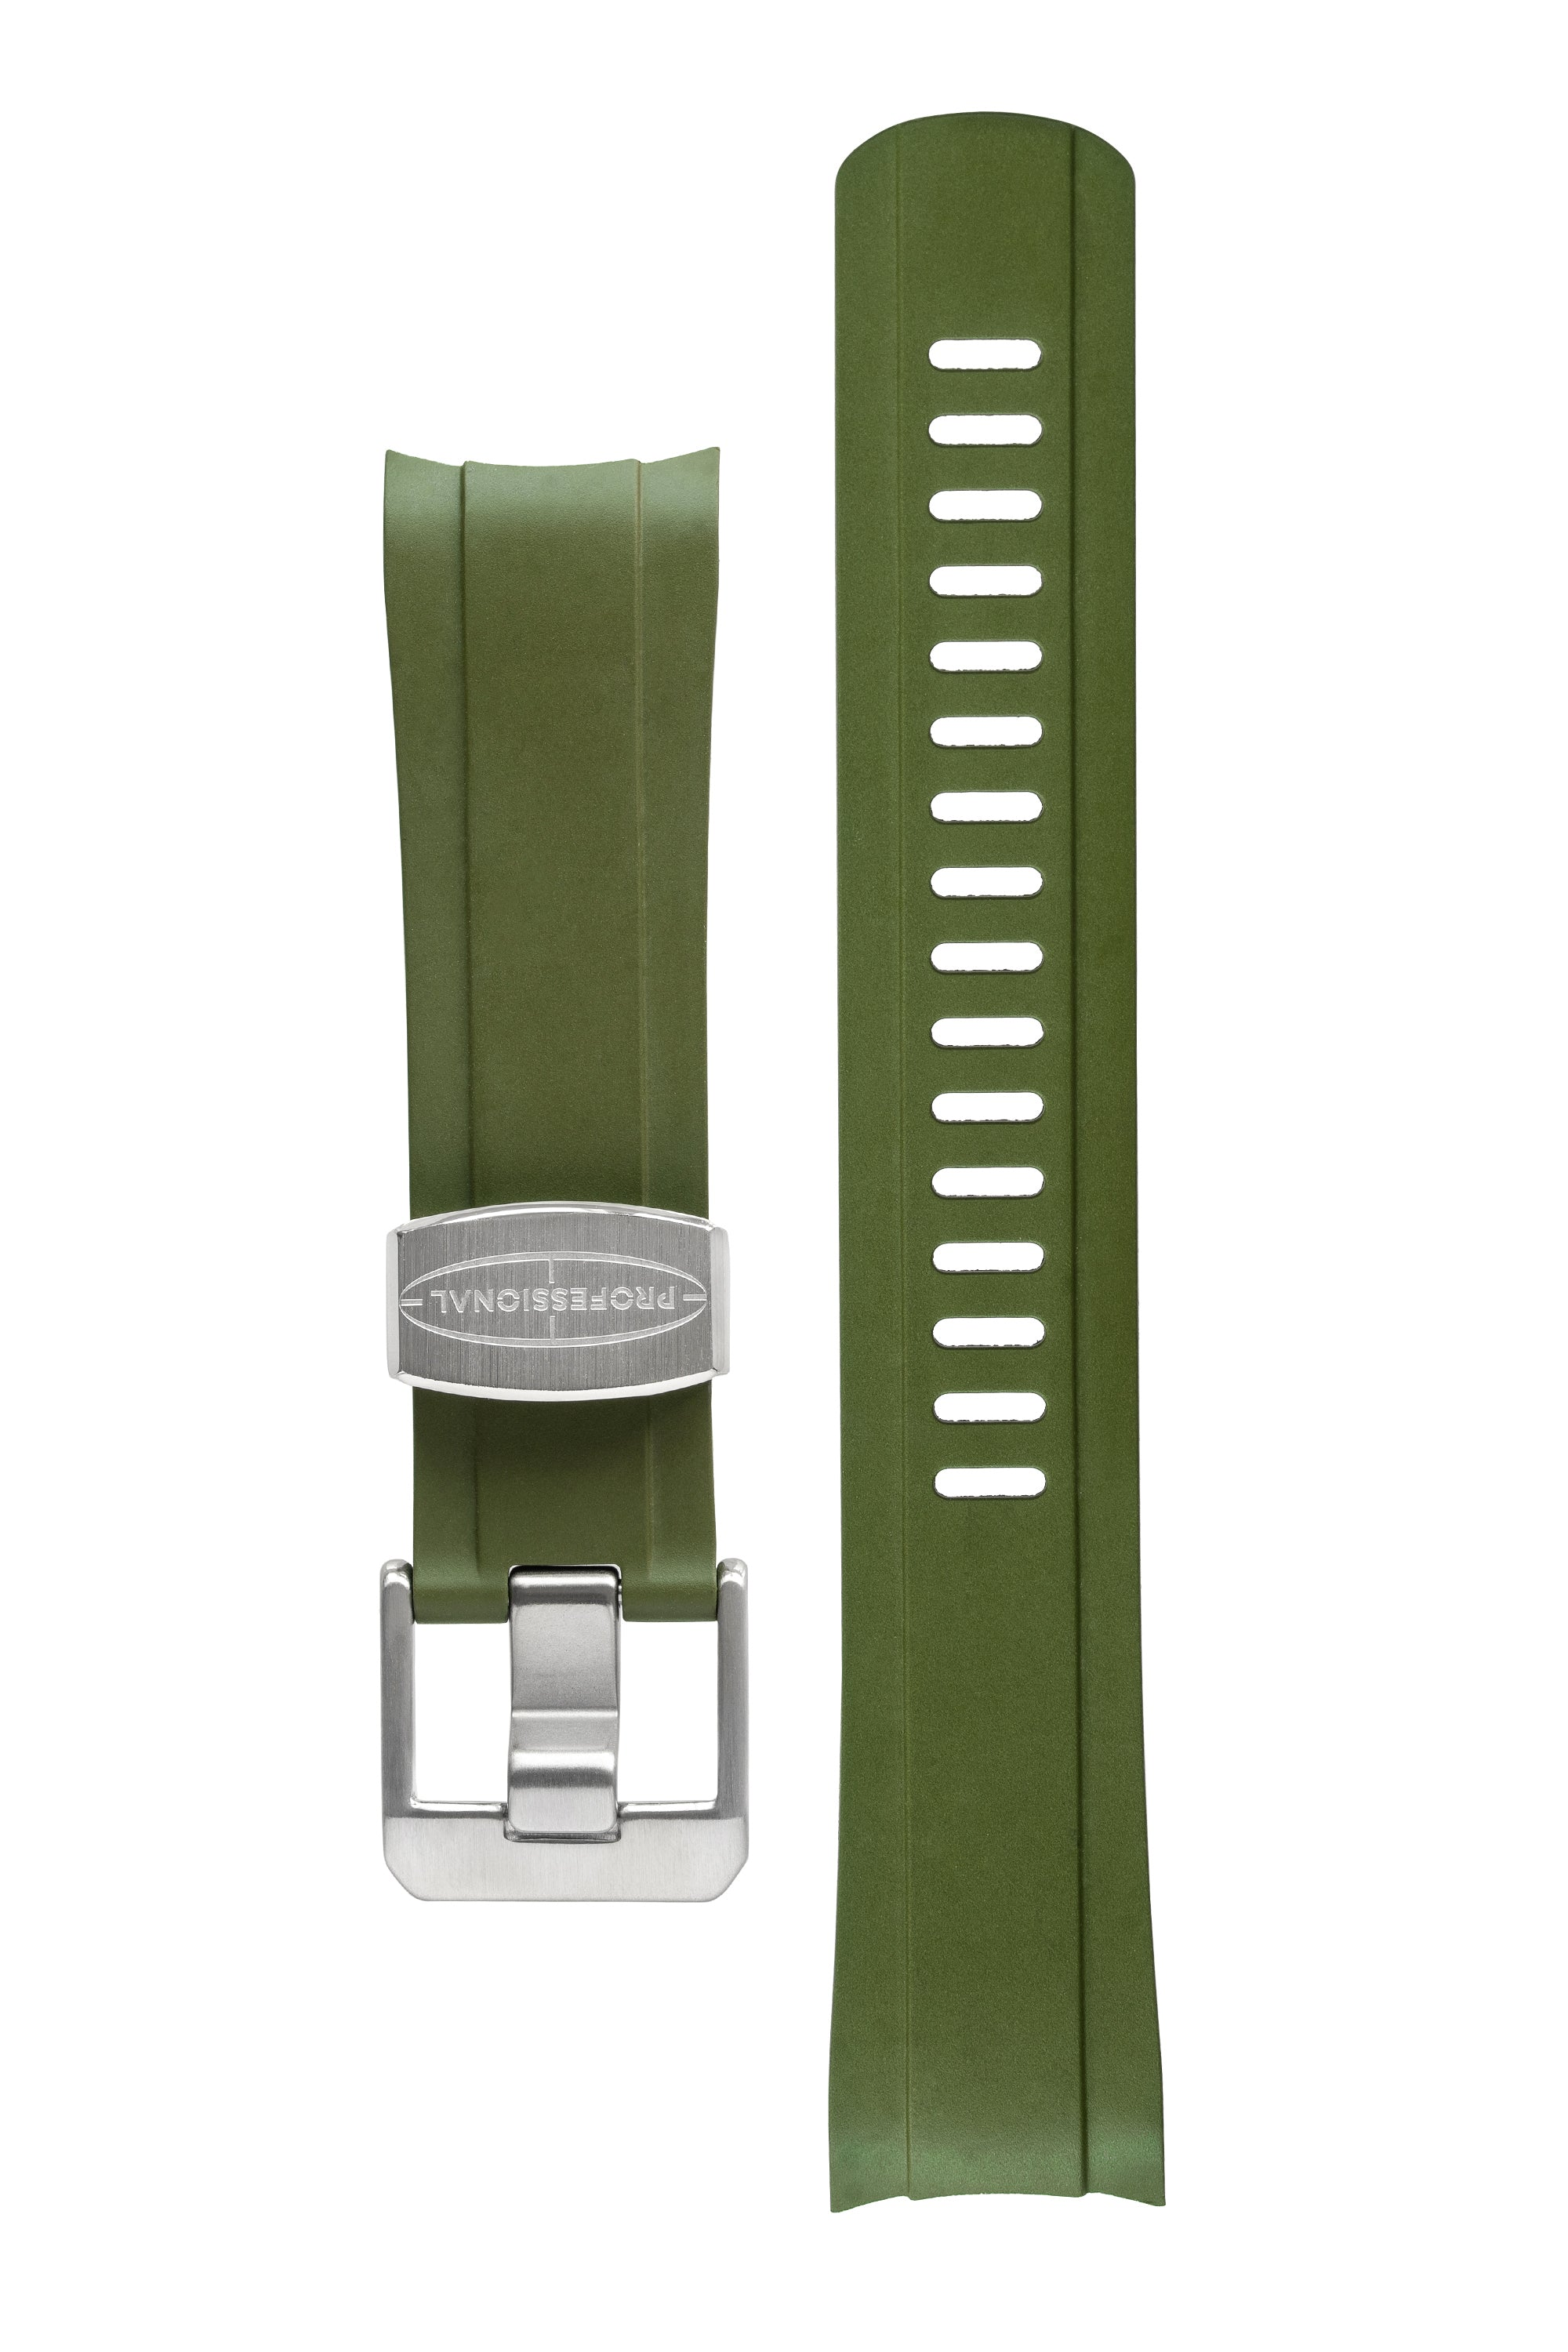 CRAFTER BLUE Rubber Watch Strap for Seiko SKX Series – GREEN with Rubber & Steel Keepers